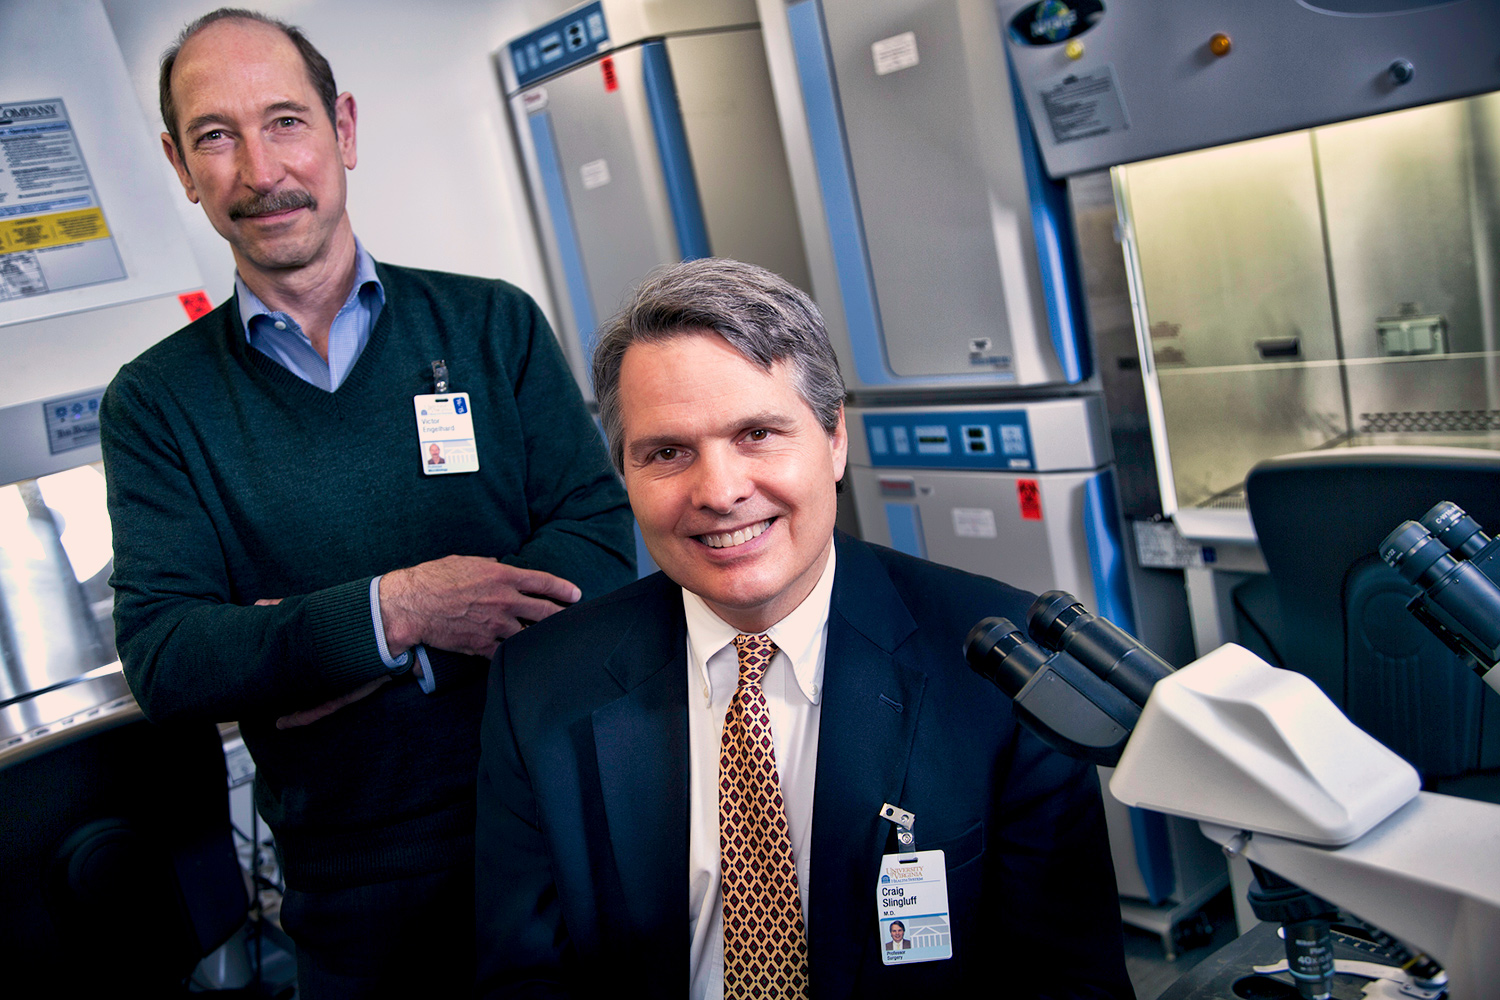 Victor H. Engelhard, left, director of the Beirne Carter Center for Immunology Research, and his research collaborator on the melanoma vaccine, Dr. Craig L. Slingluff Jr. of the UVA Cancer Center. (Photo by Jackson Smith, UVA Health System)